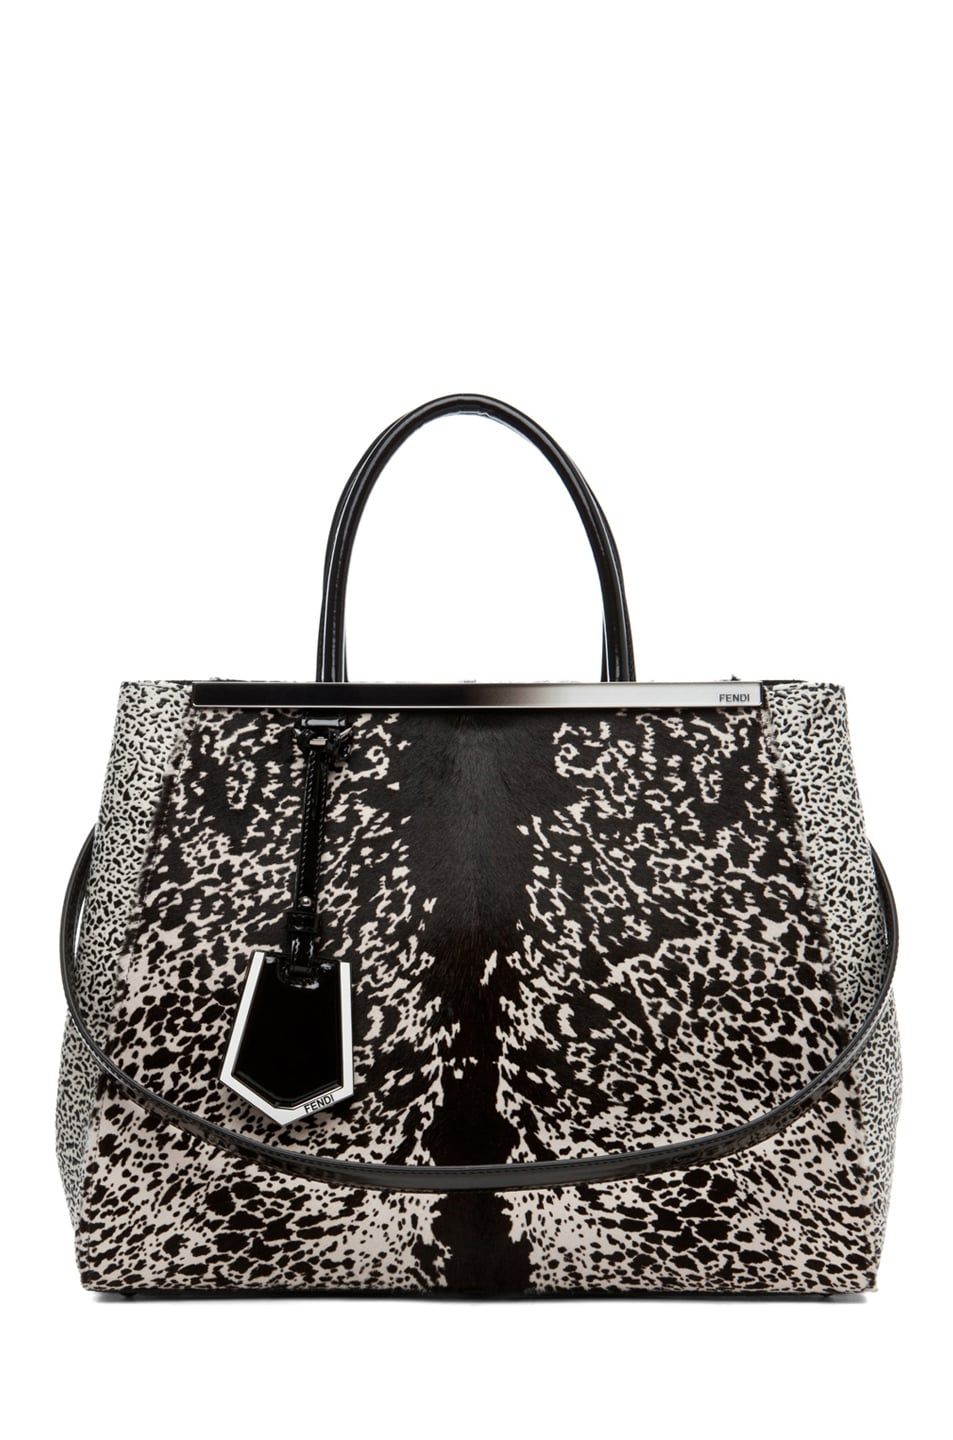 Image 1 of Fendi Handbag in Black